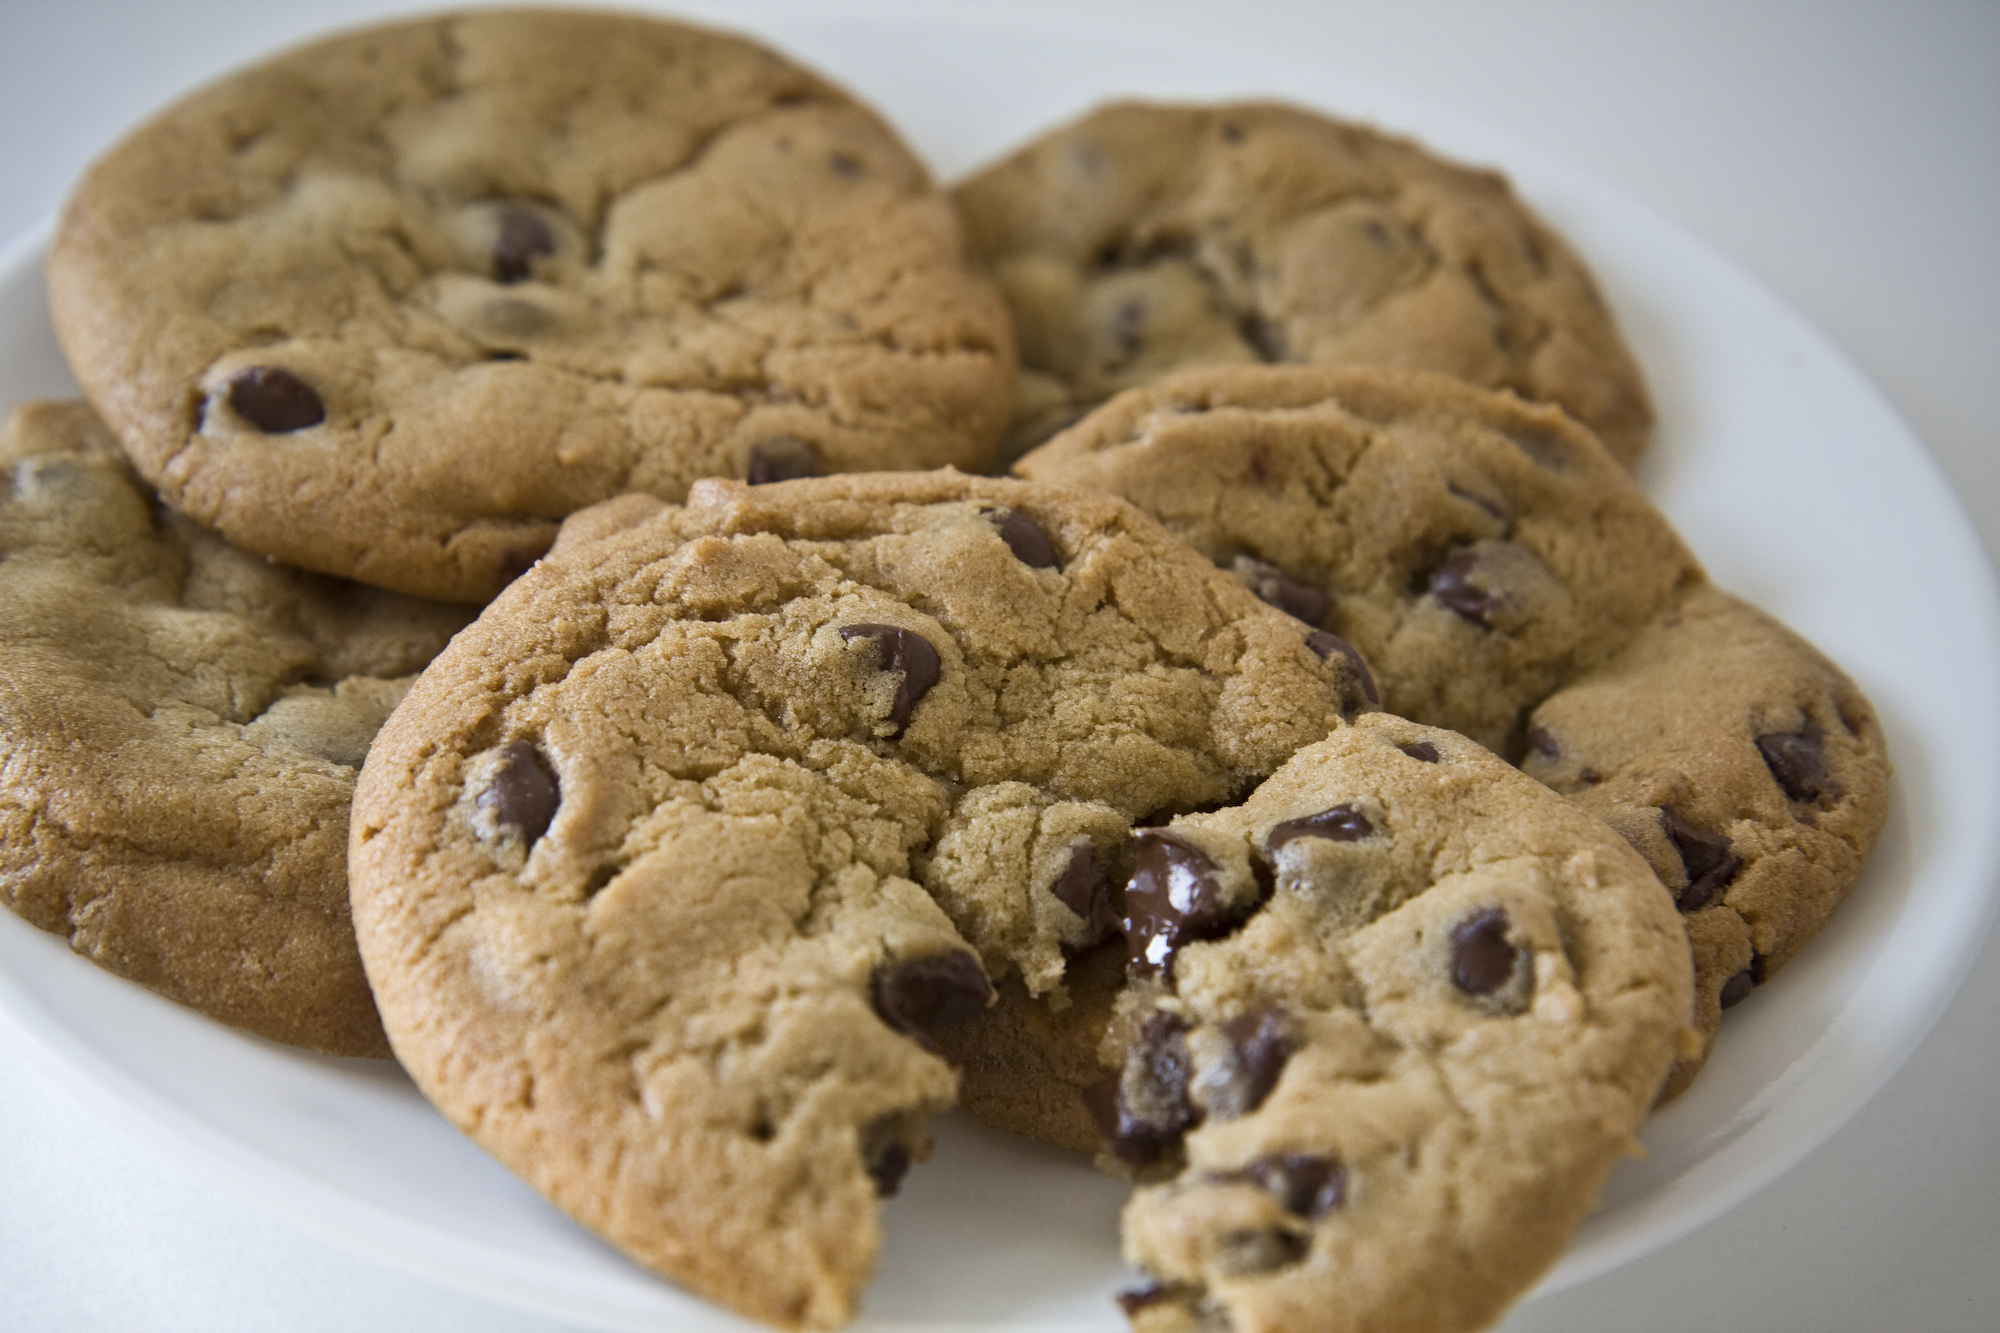 Warm cookie company Tiff's Treats gets sweet delivery: $11 million ...